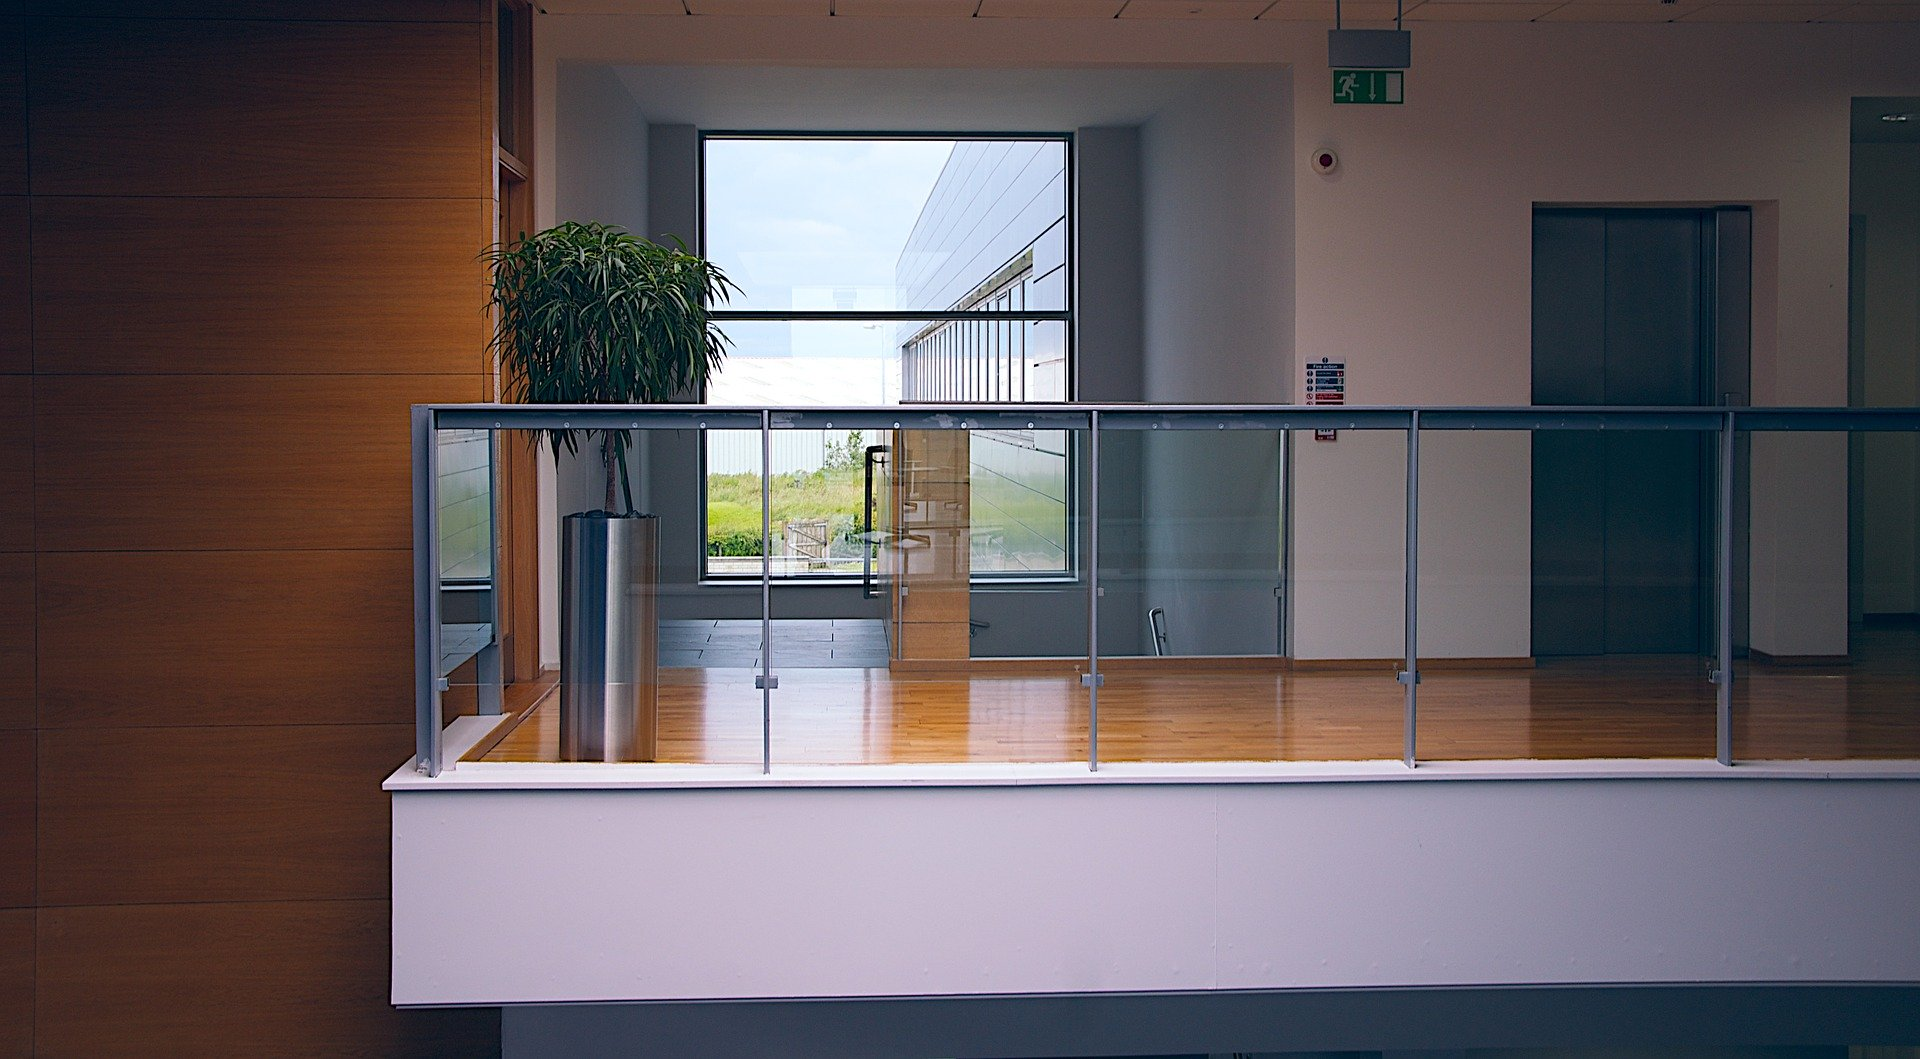 staircase-and-elevator-in-office-building